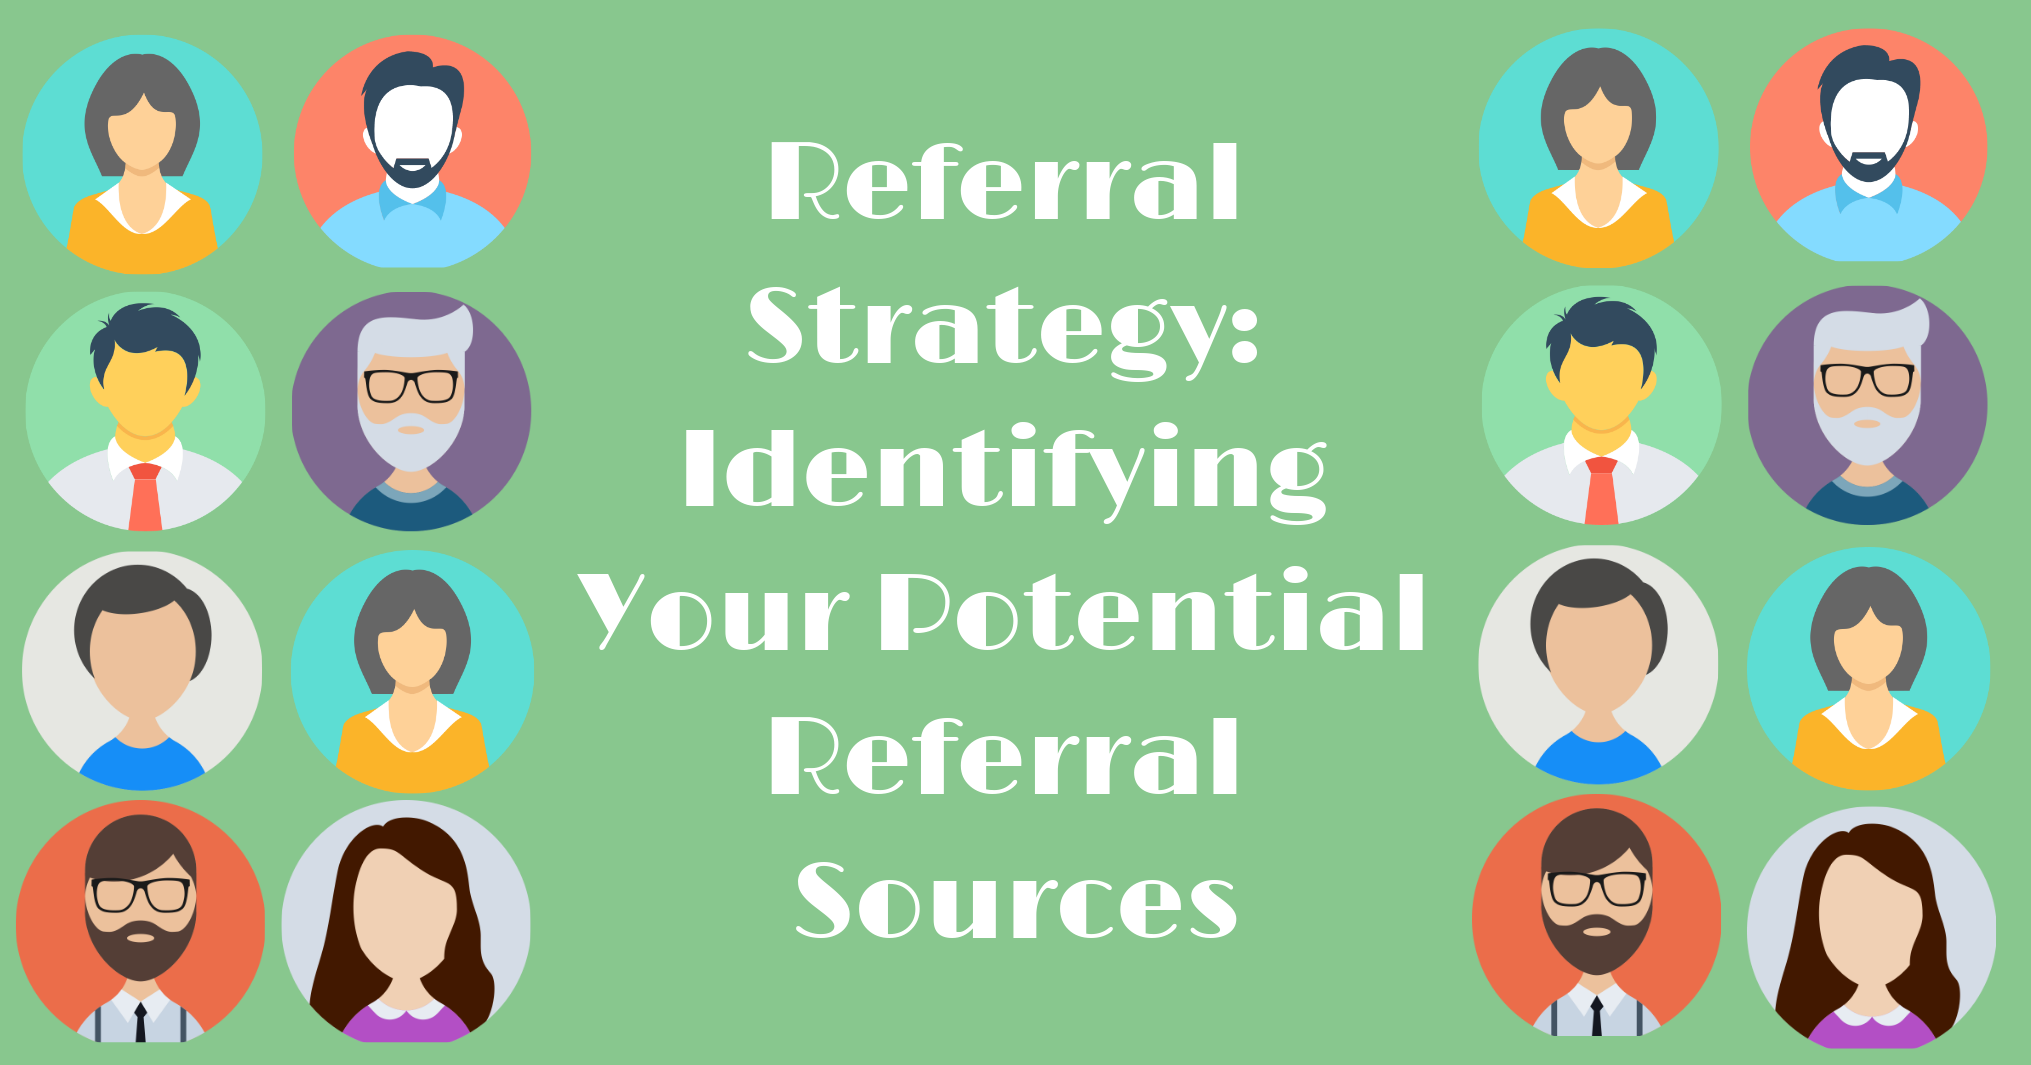 Identifying Your Potential Referral Sources